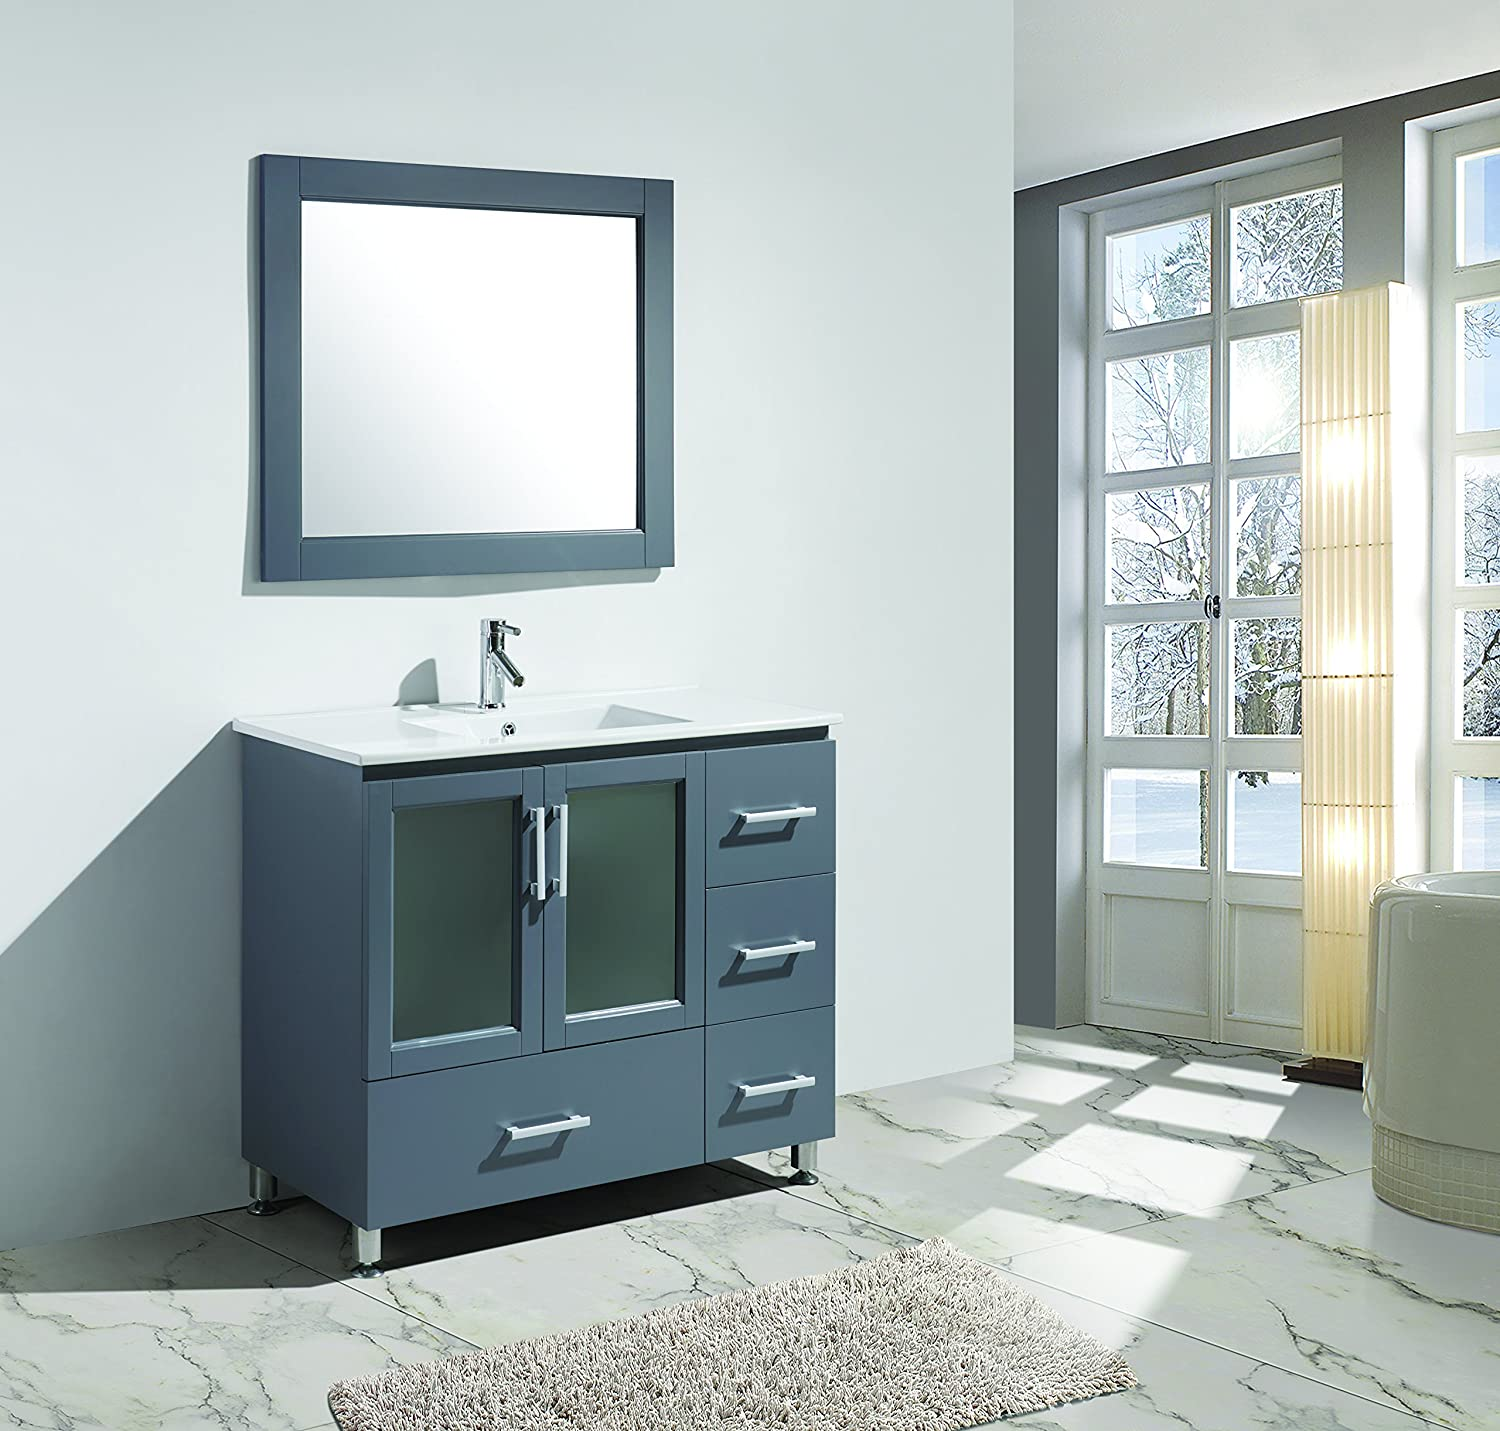 many espresso at know vanity in close up bathroom with people show bdlh soft inch how do you drawers